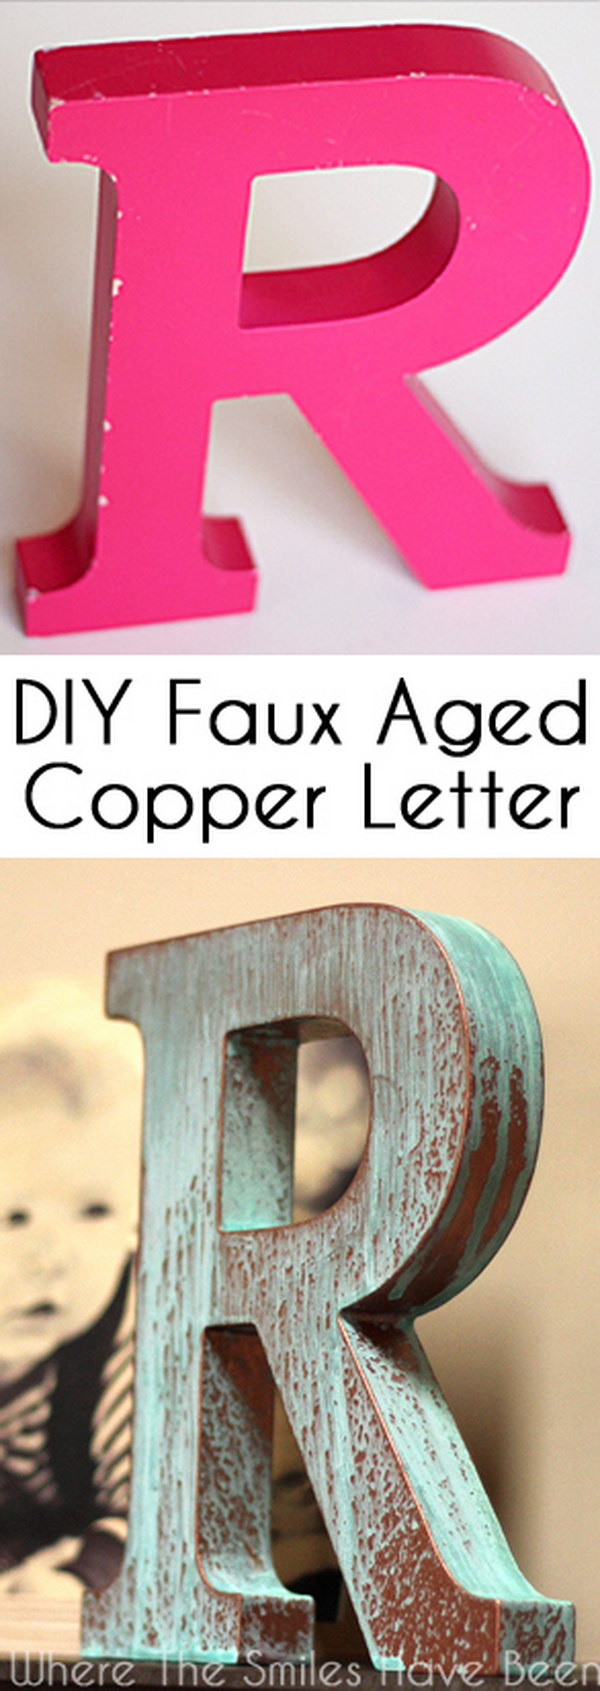 DIY Faux Copper Letter Aged with Blue Patina